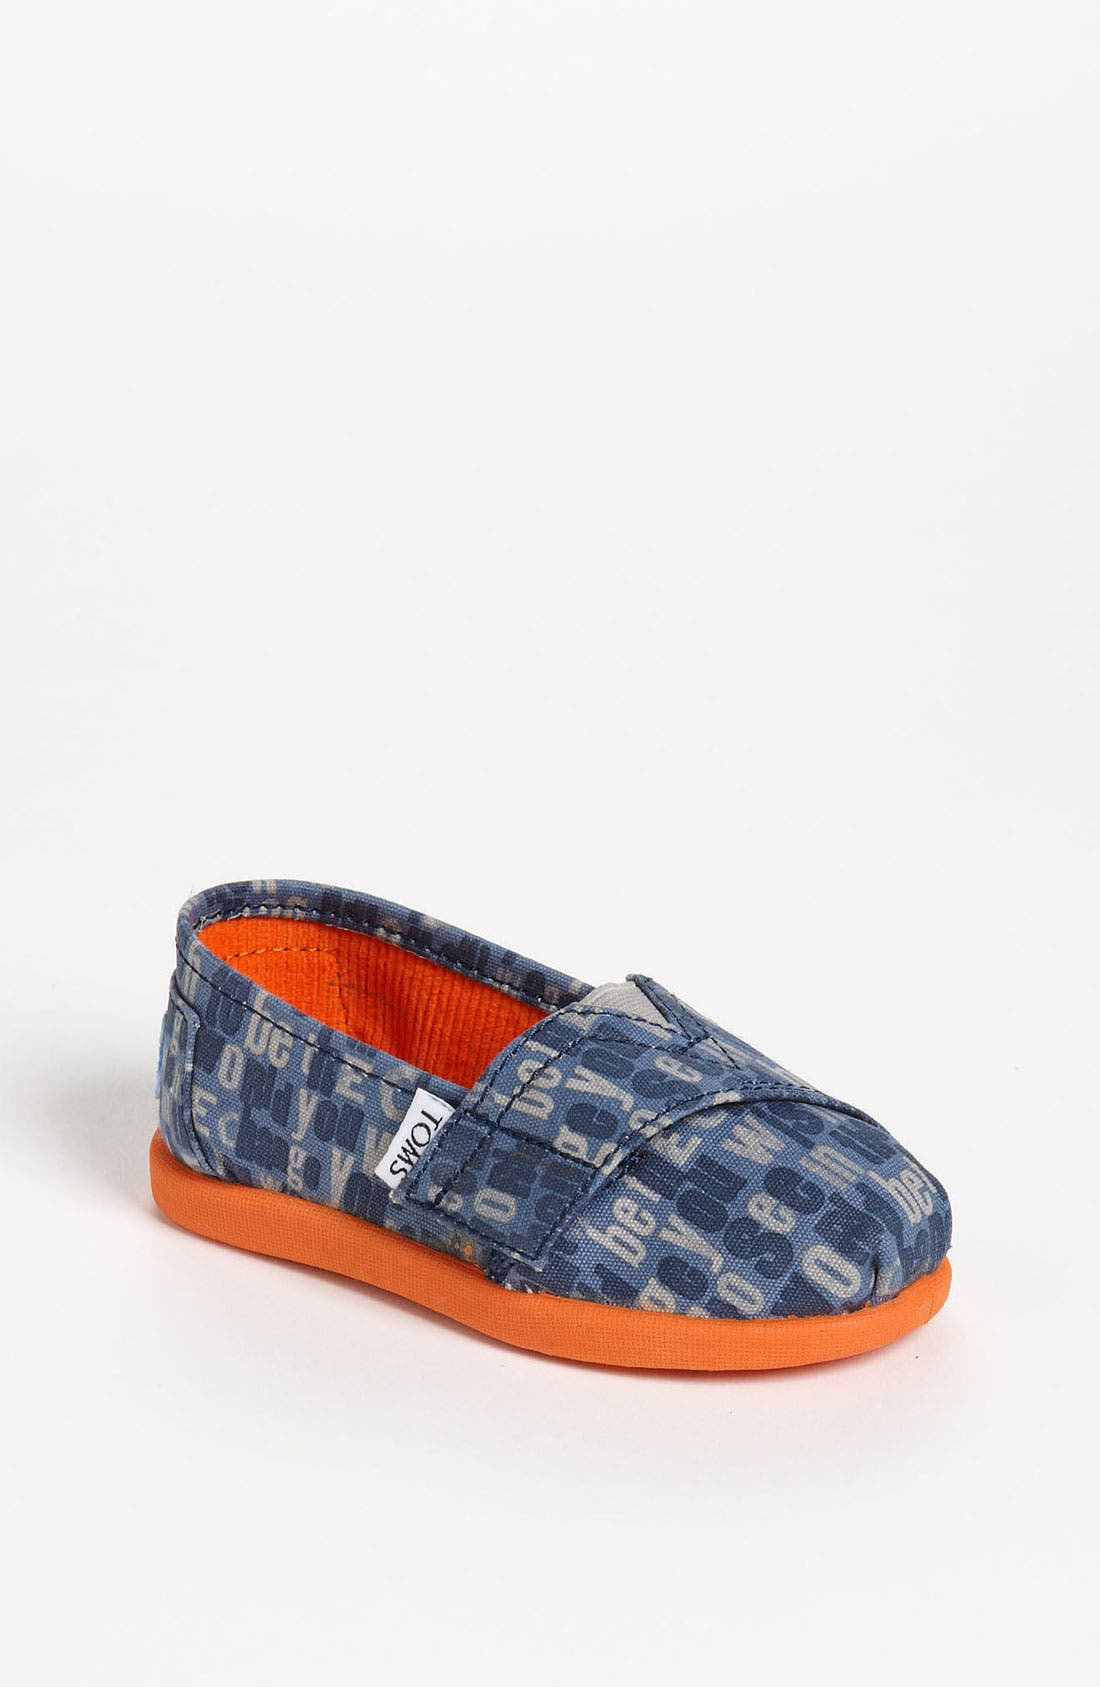 Alternate Image 1 Selected - TOMS 'Classic Tiny - Ash' Slip-On (Baby, Walker & Toddler)